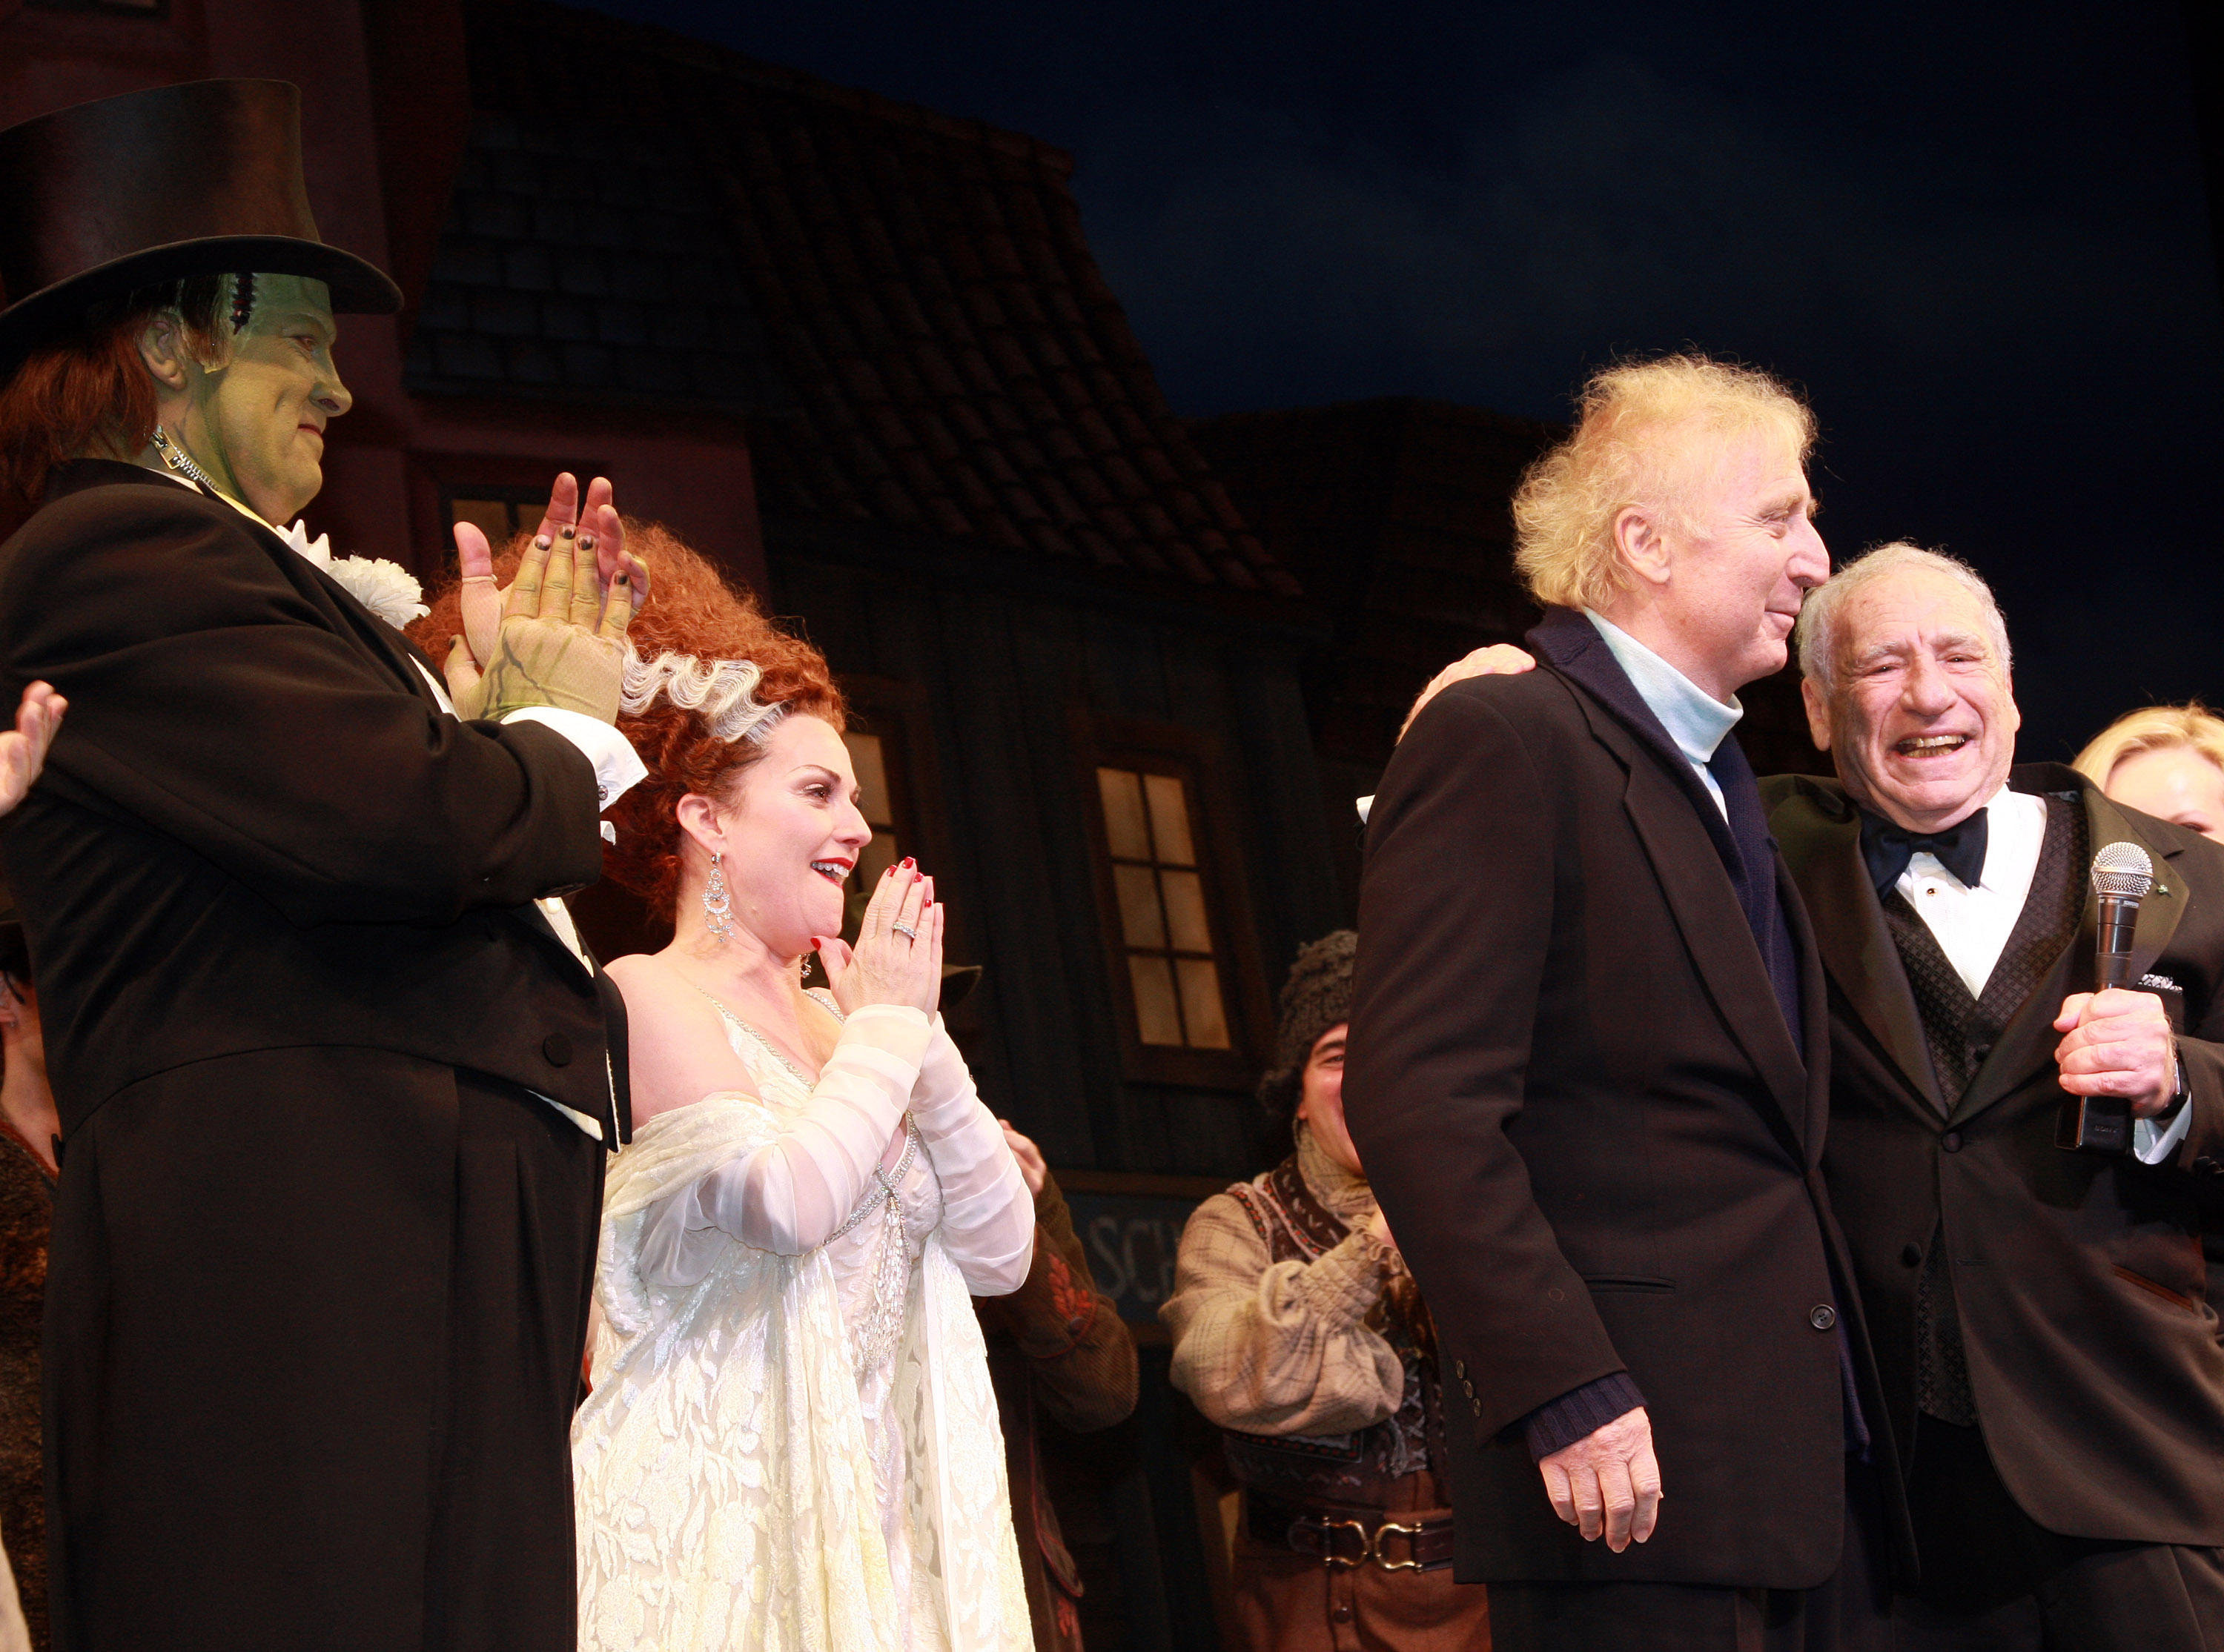 Gene Wilder and Mel Brooks, far right, at the curtain call for Mel Brooks' musical, Young Frankenstein, on Nov. 8, 2007 in New York City.